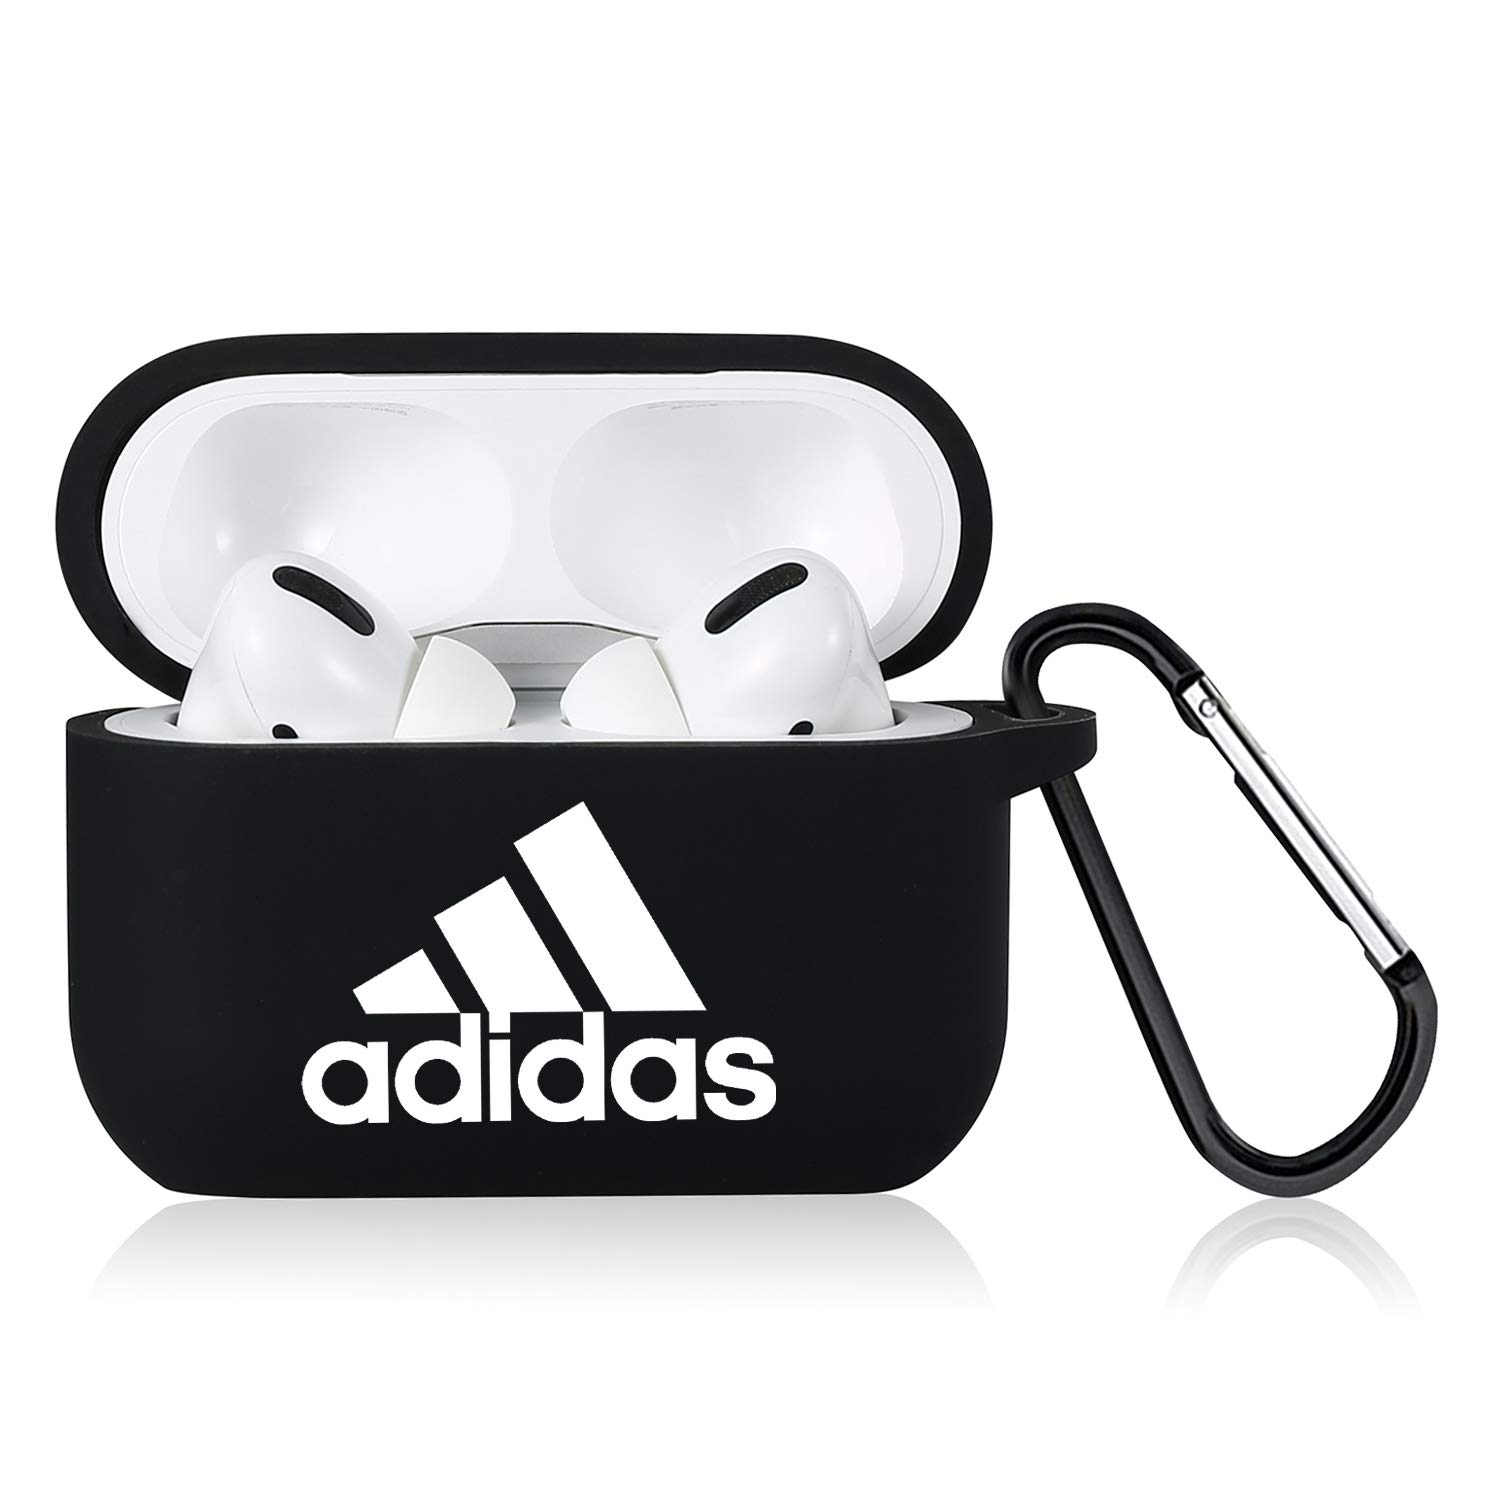 Punswan for Airpods Pro Case,Cute 3D Luxury Character Soft Silicone Stylish Cover, Sport Fun Cool Keychain Style Design Skin,Cases with Lanyard Chain,for Girls Kids Boys Men Air pods Pro/3 (Black Adi)